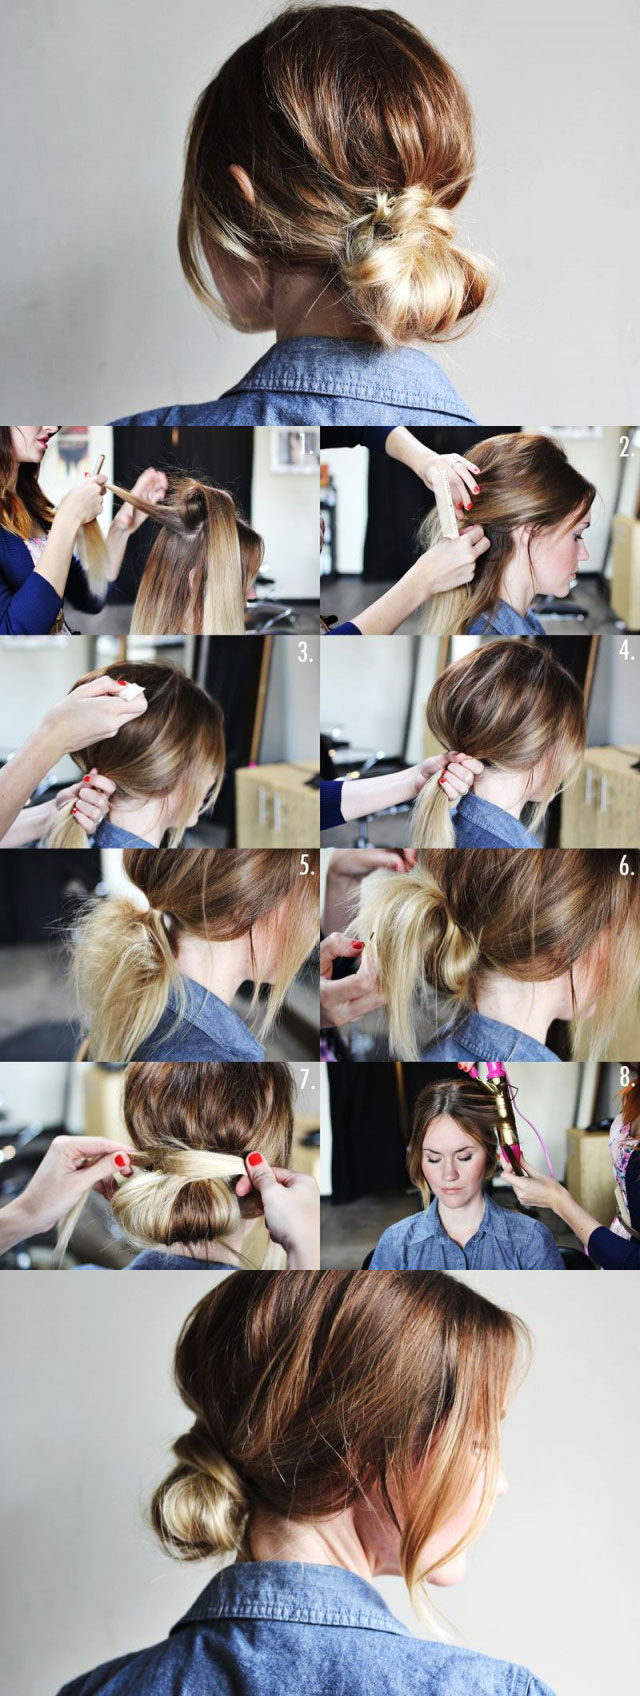 Easy Hairstyles You Can Cute Hairstyles To Do On Yourself